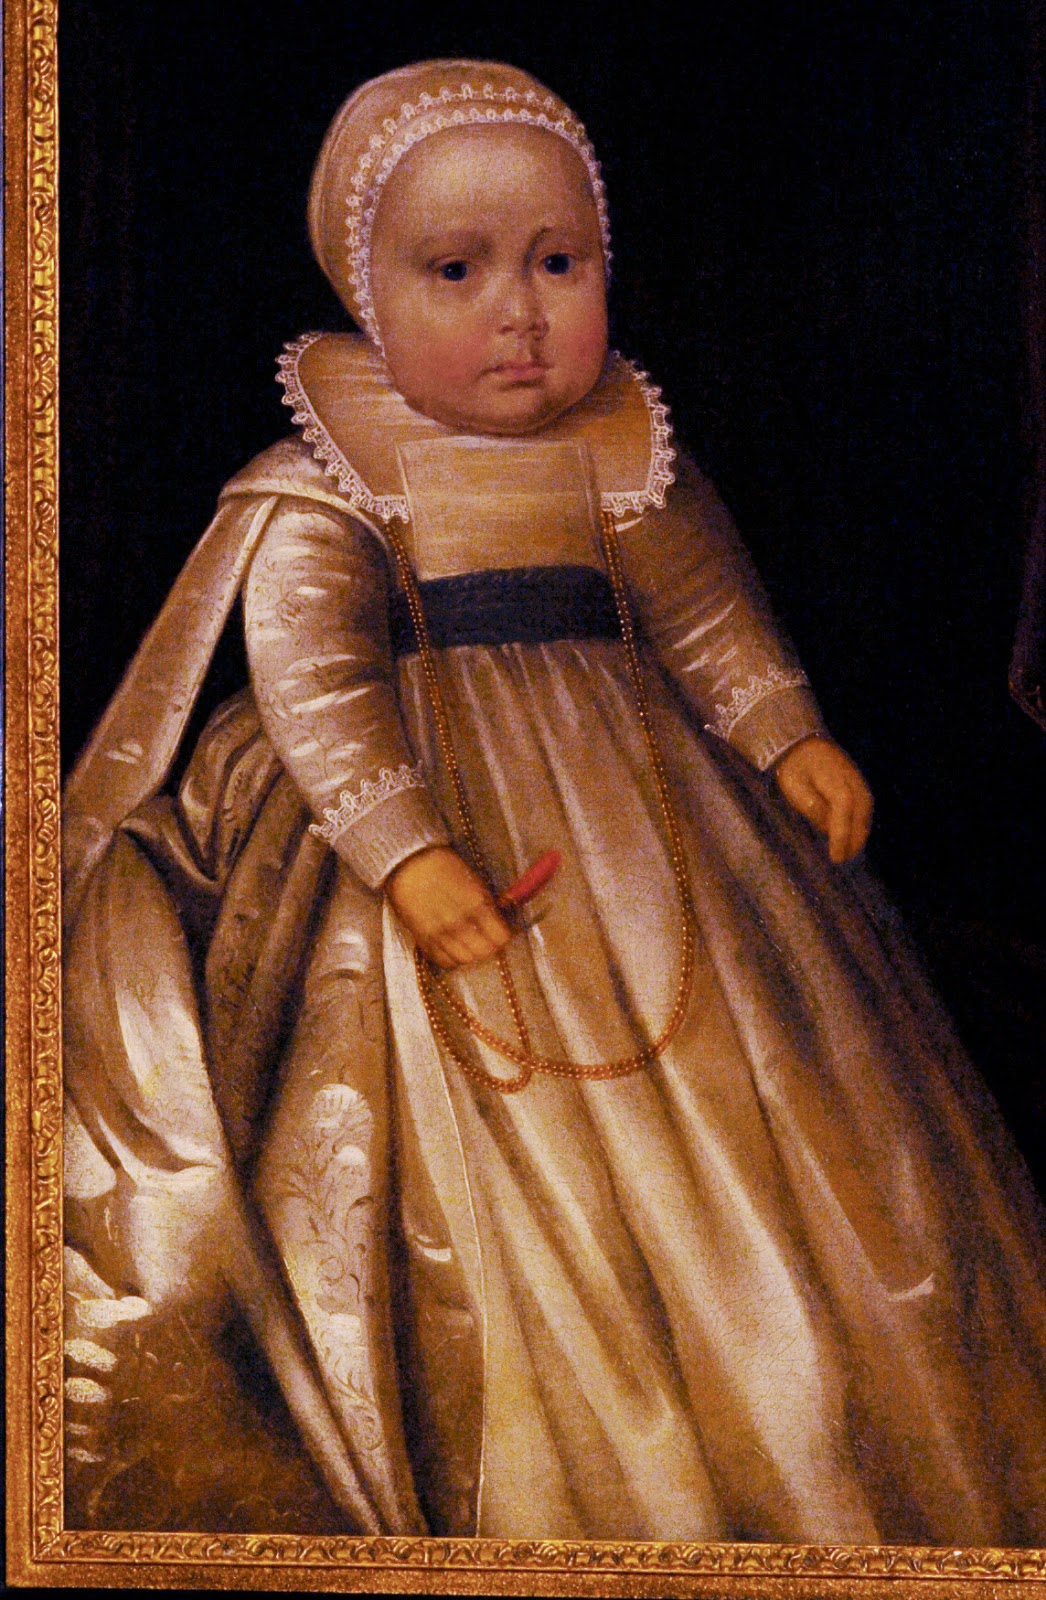 children in elizabethan england Elizabethan england faced a mounting economic problem as the poor became poorer, and a growing army of vagabonds and beggars roamed the streets and countryside in.